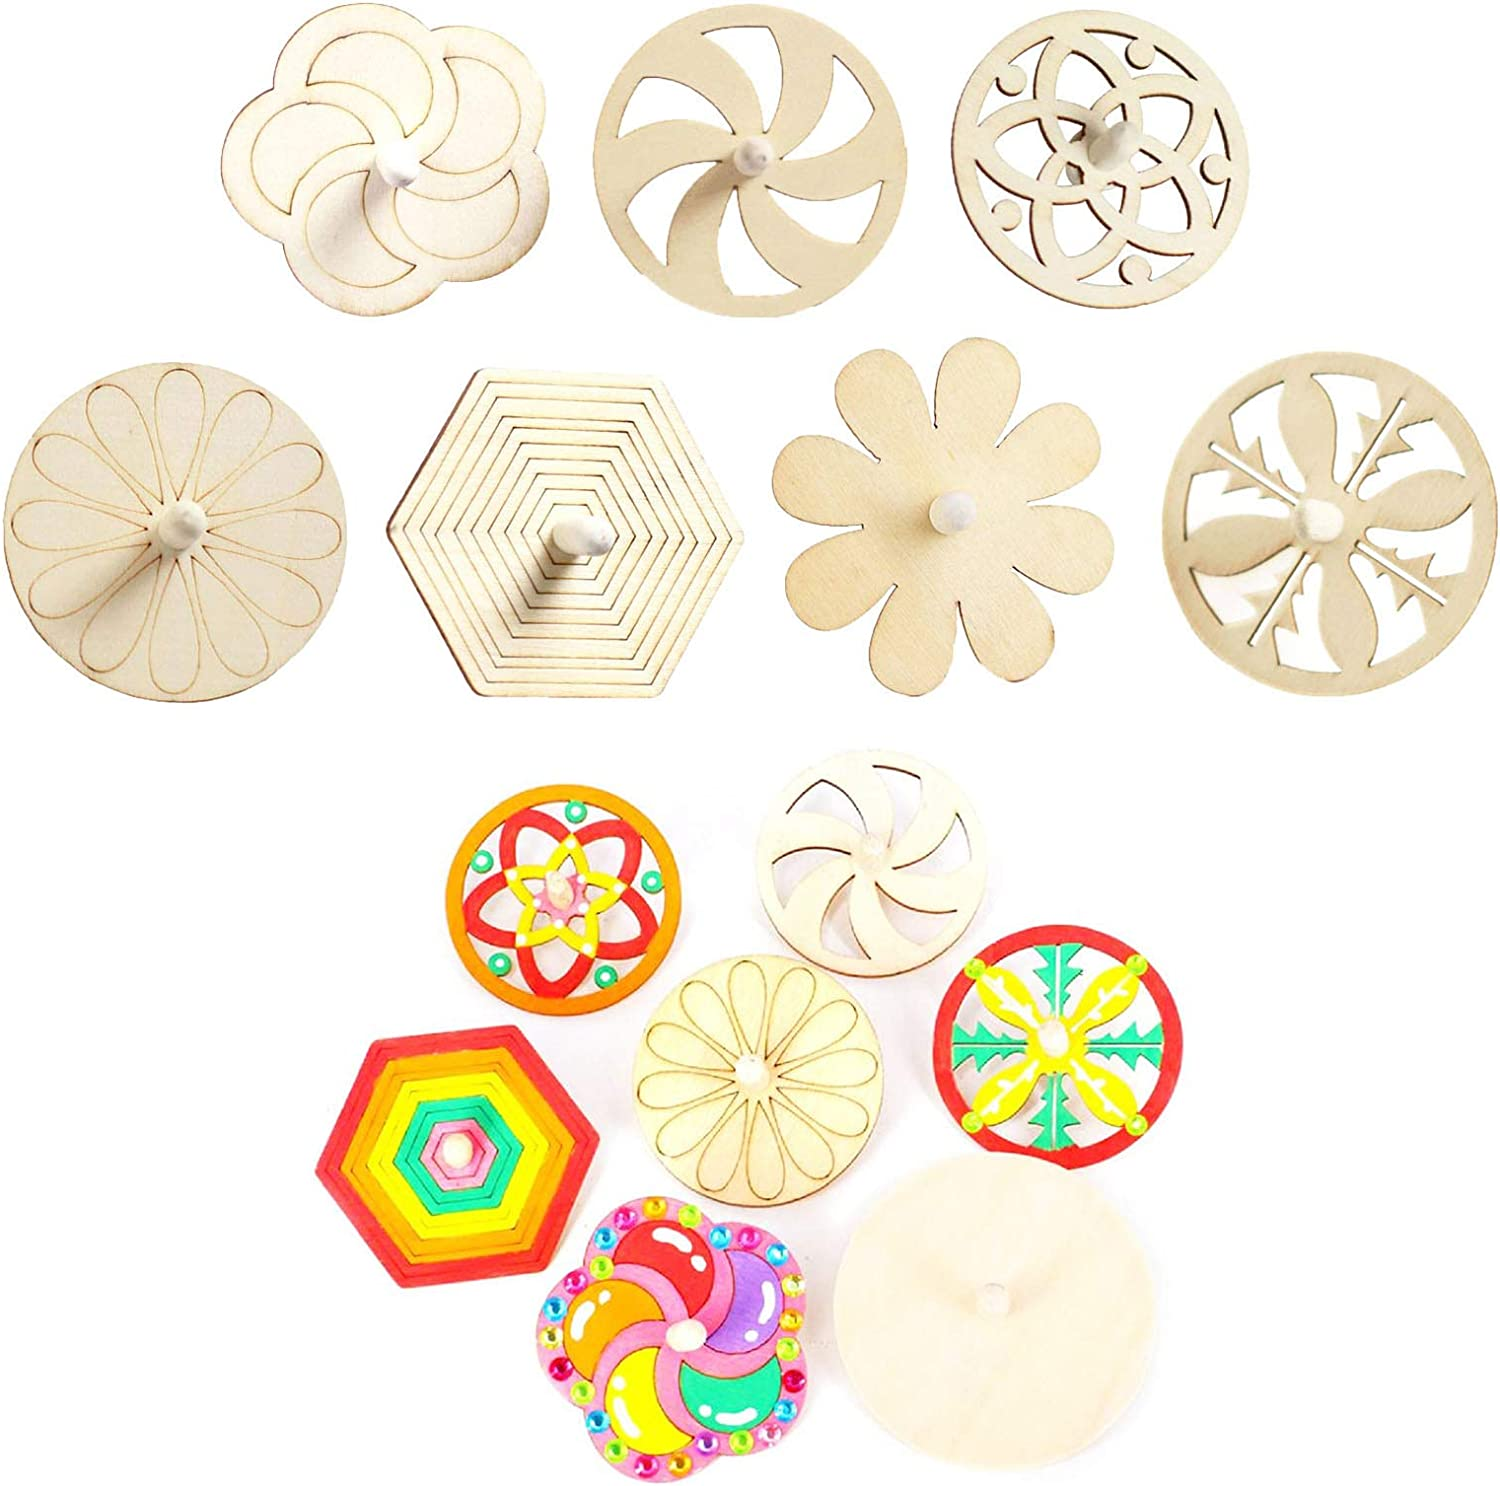 Handmade Small gyro Toy Gifts LiLiy 16 Pcs,DIY Creative Coloring Pattern Wooden top